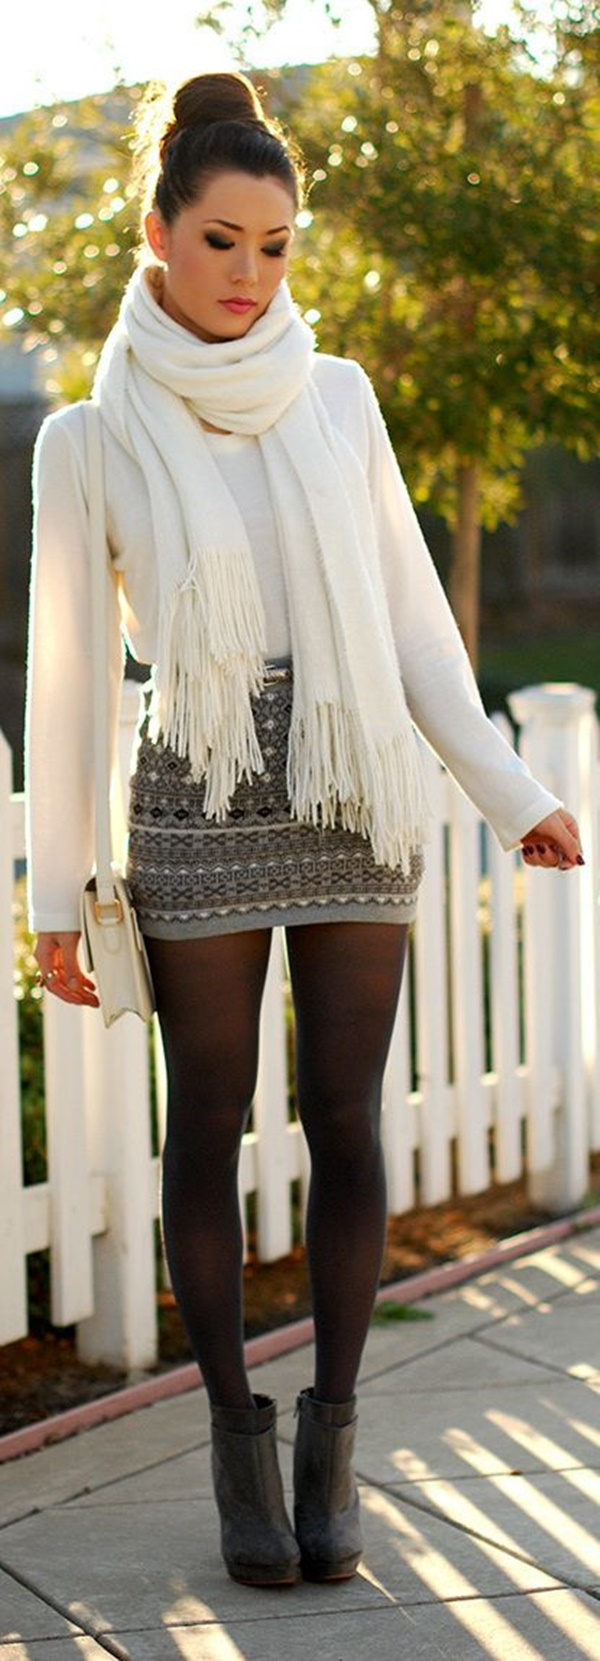 Winter Outfits for Women21